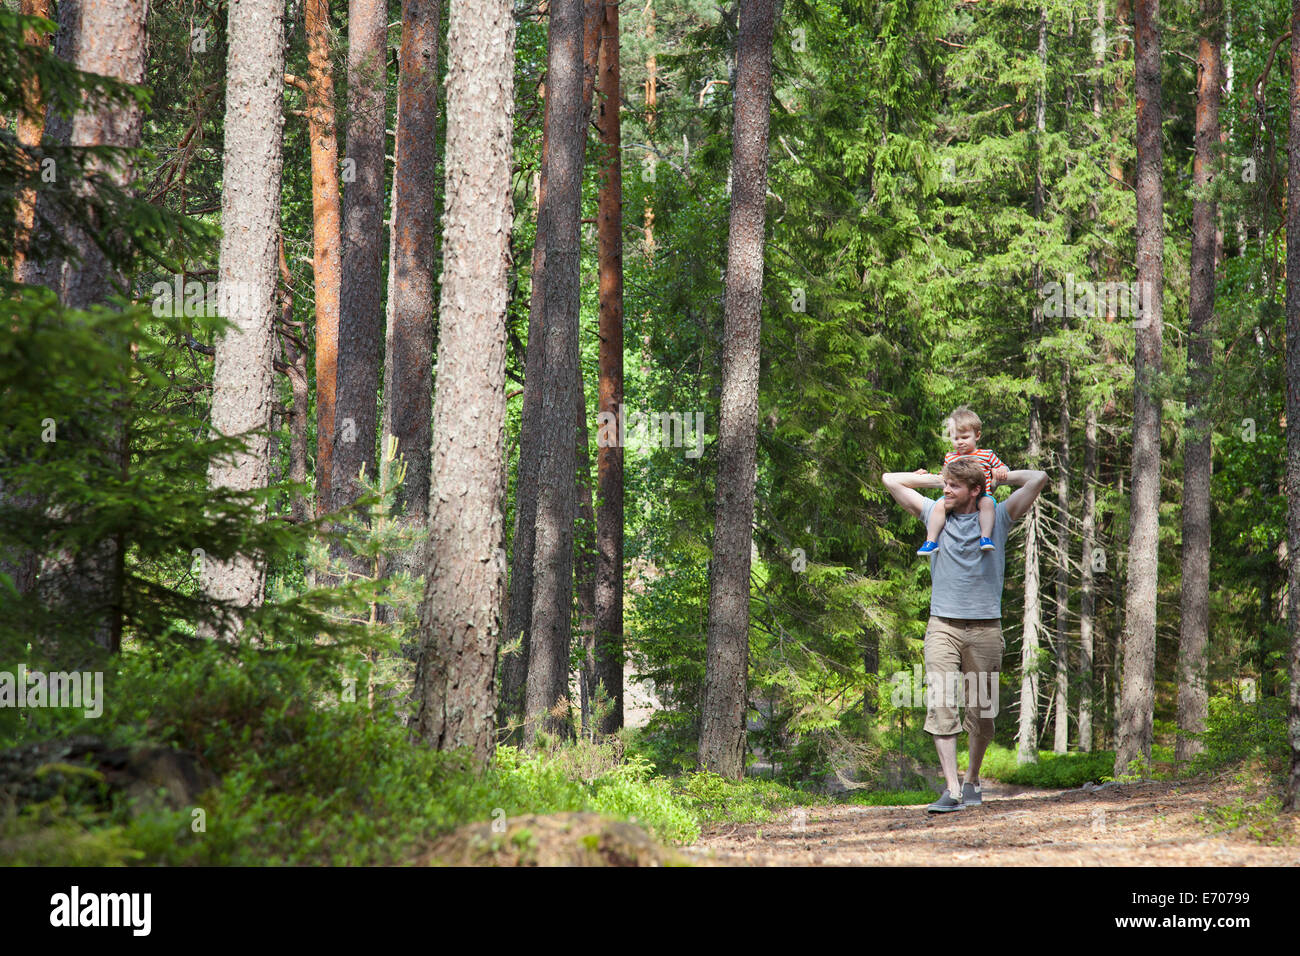 Father shoulder carrying toddler son through forest, Somerniemi, Finland Stock Photo